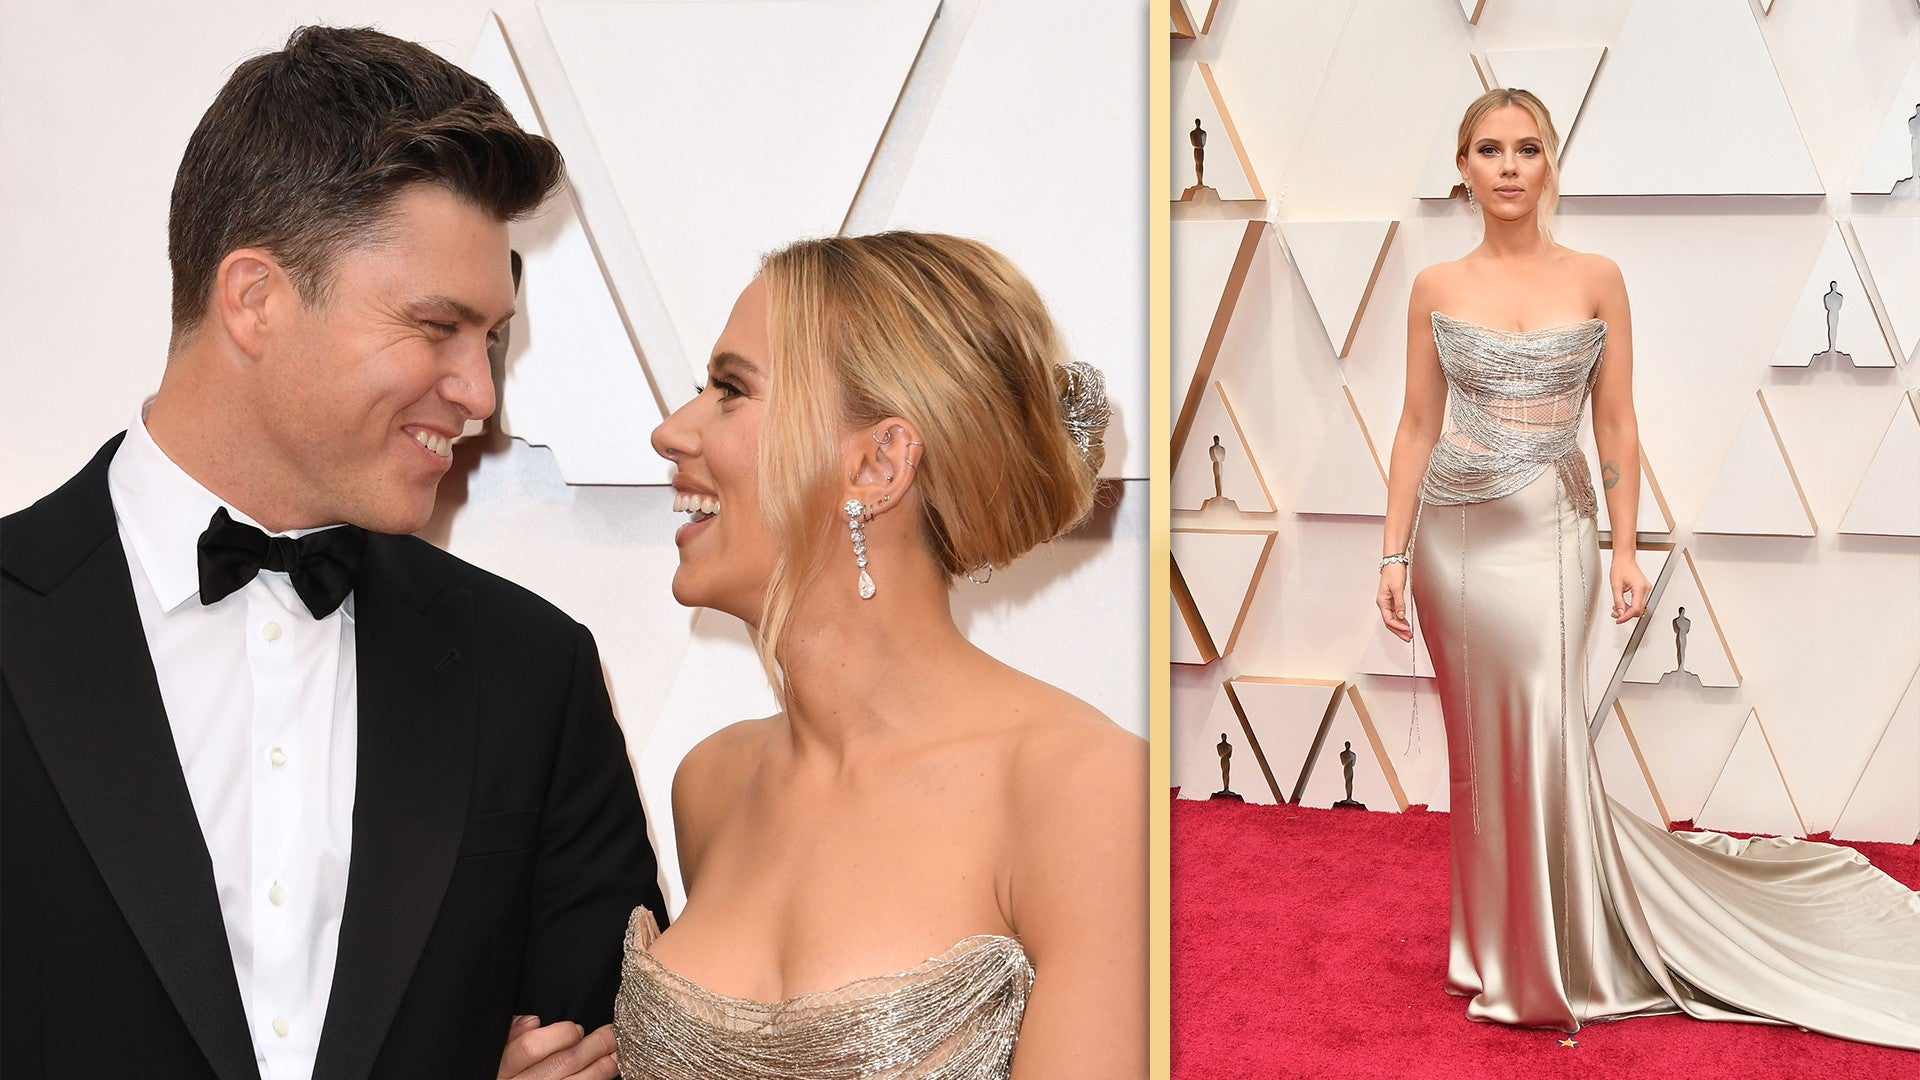 Colin Jost And Scarlett Johansson Are Married Entertainment Tonight